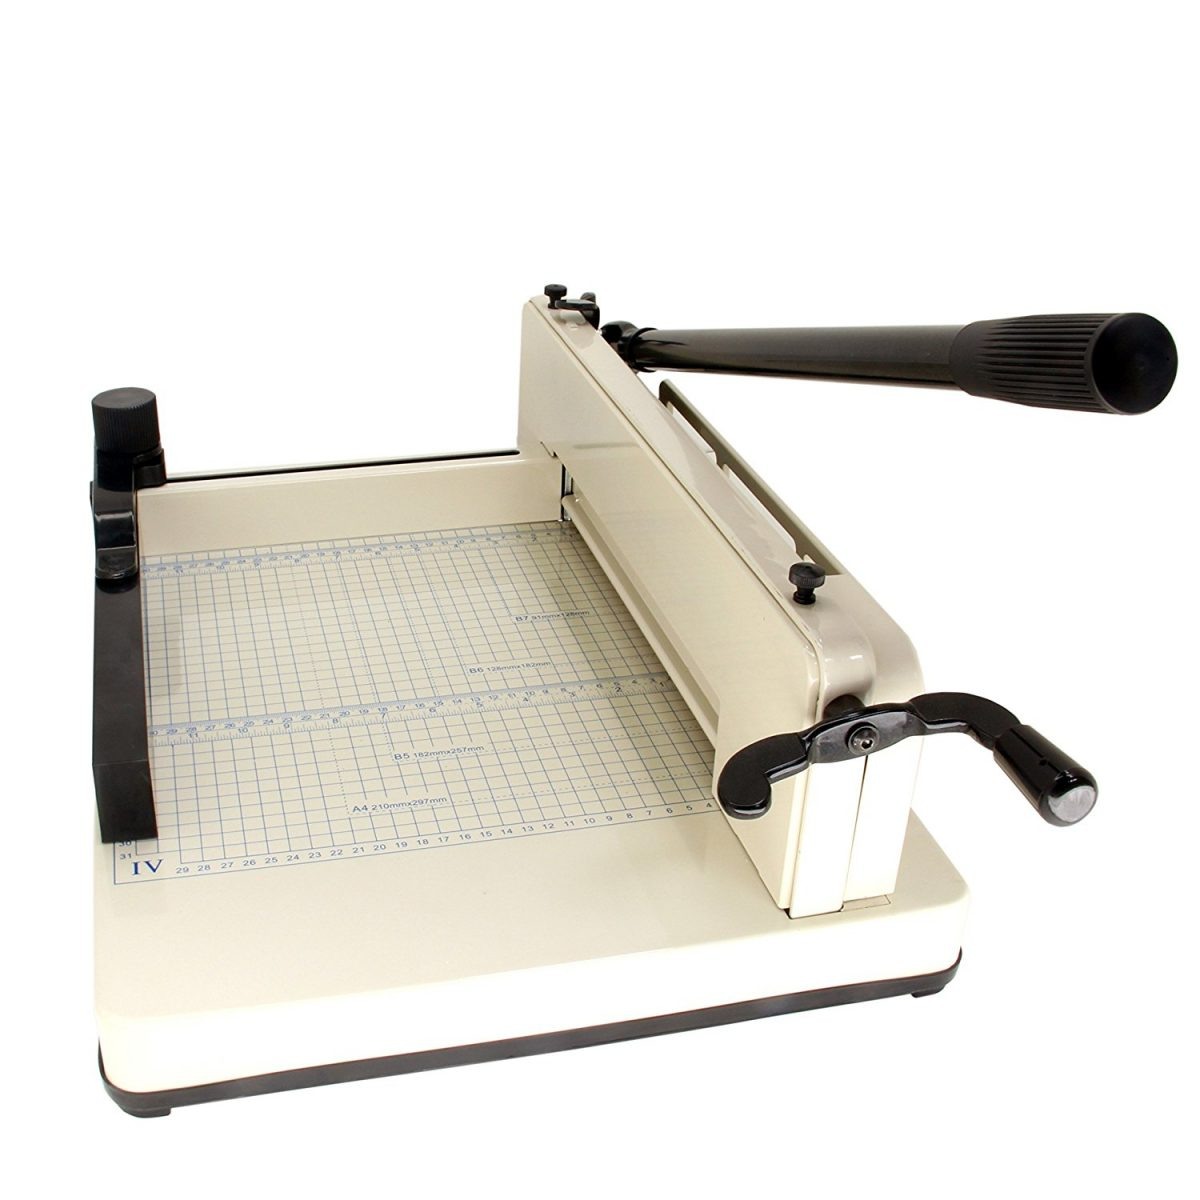 "HFS (R) New Heavy Duty Guillotine Paper Cutter - 12"" Commercial Metal Base A3/A4 Trimmer"